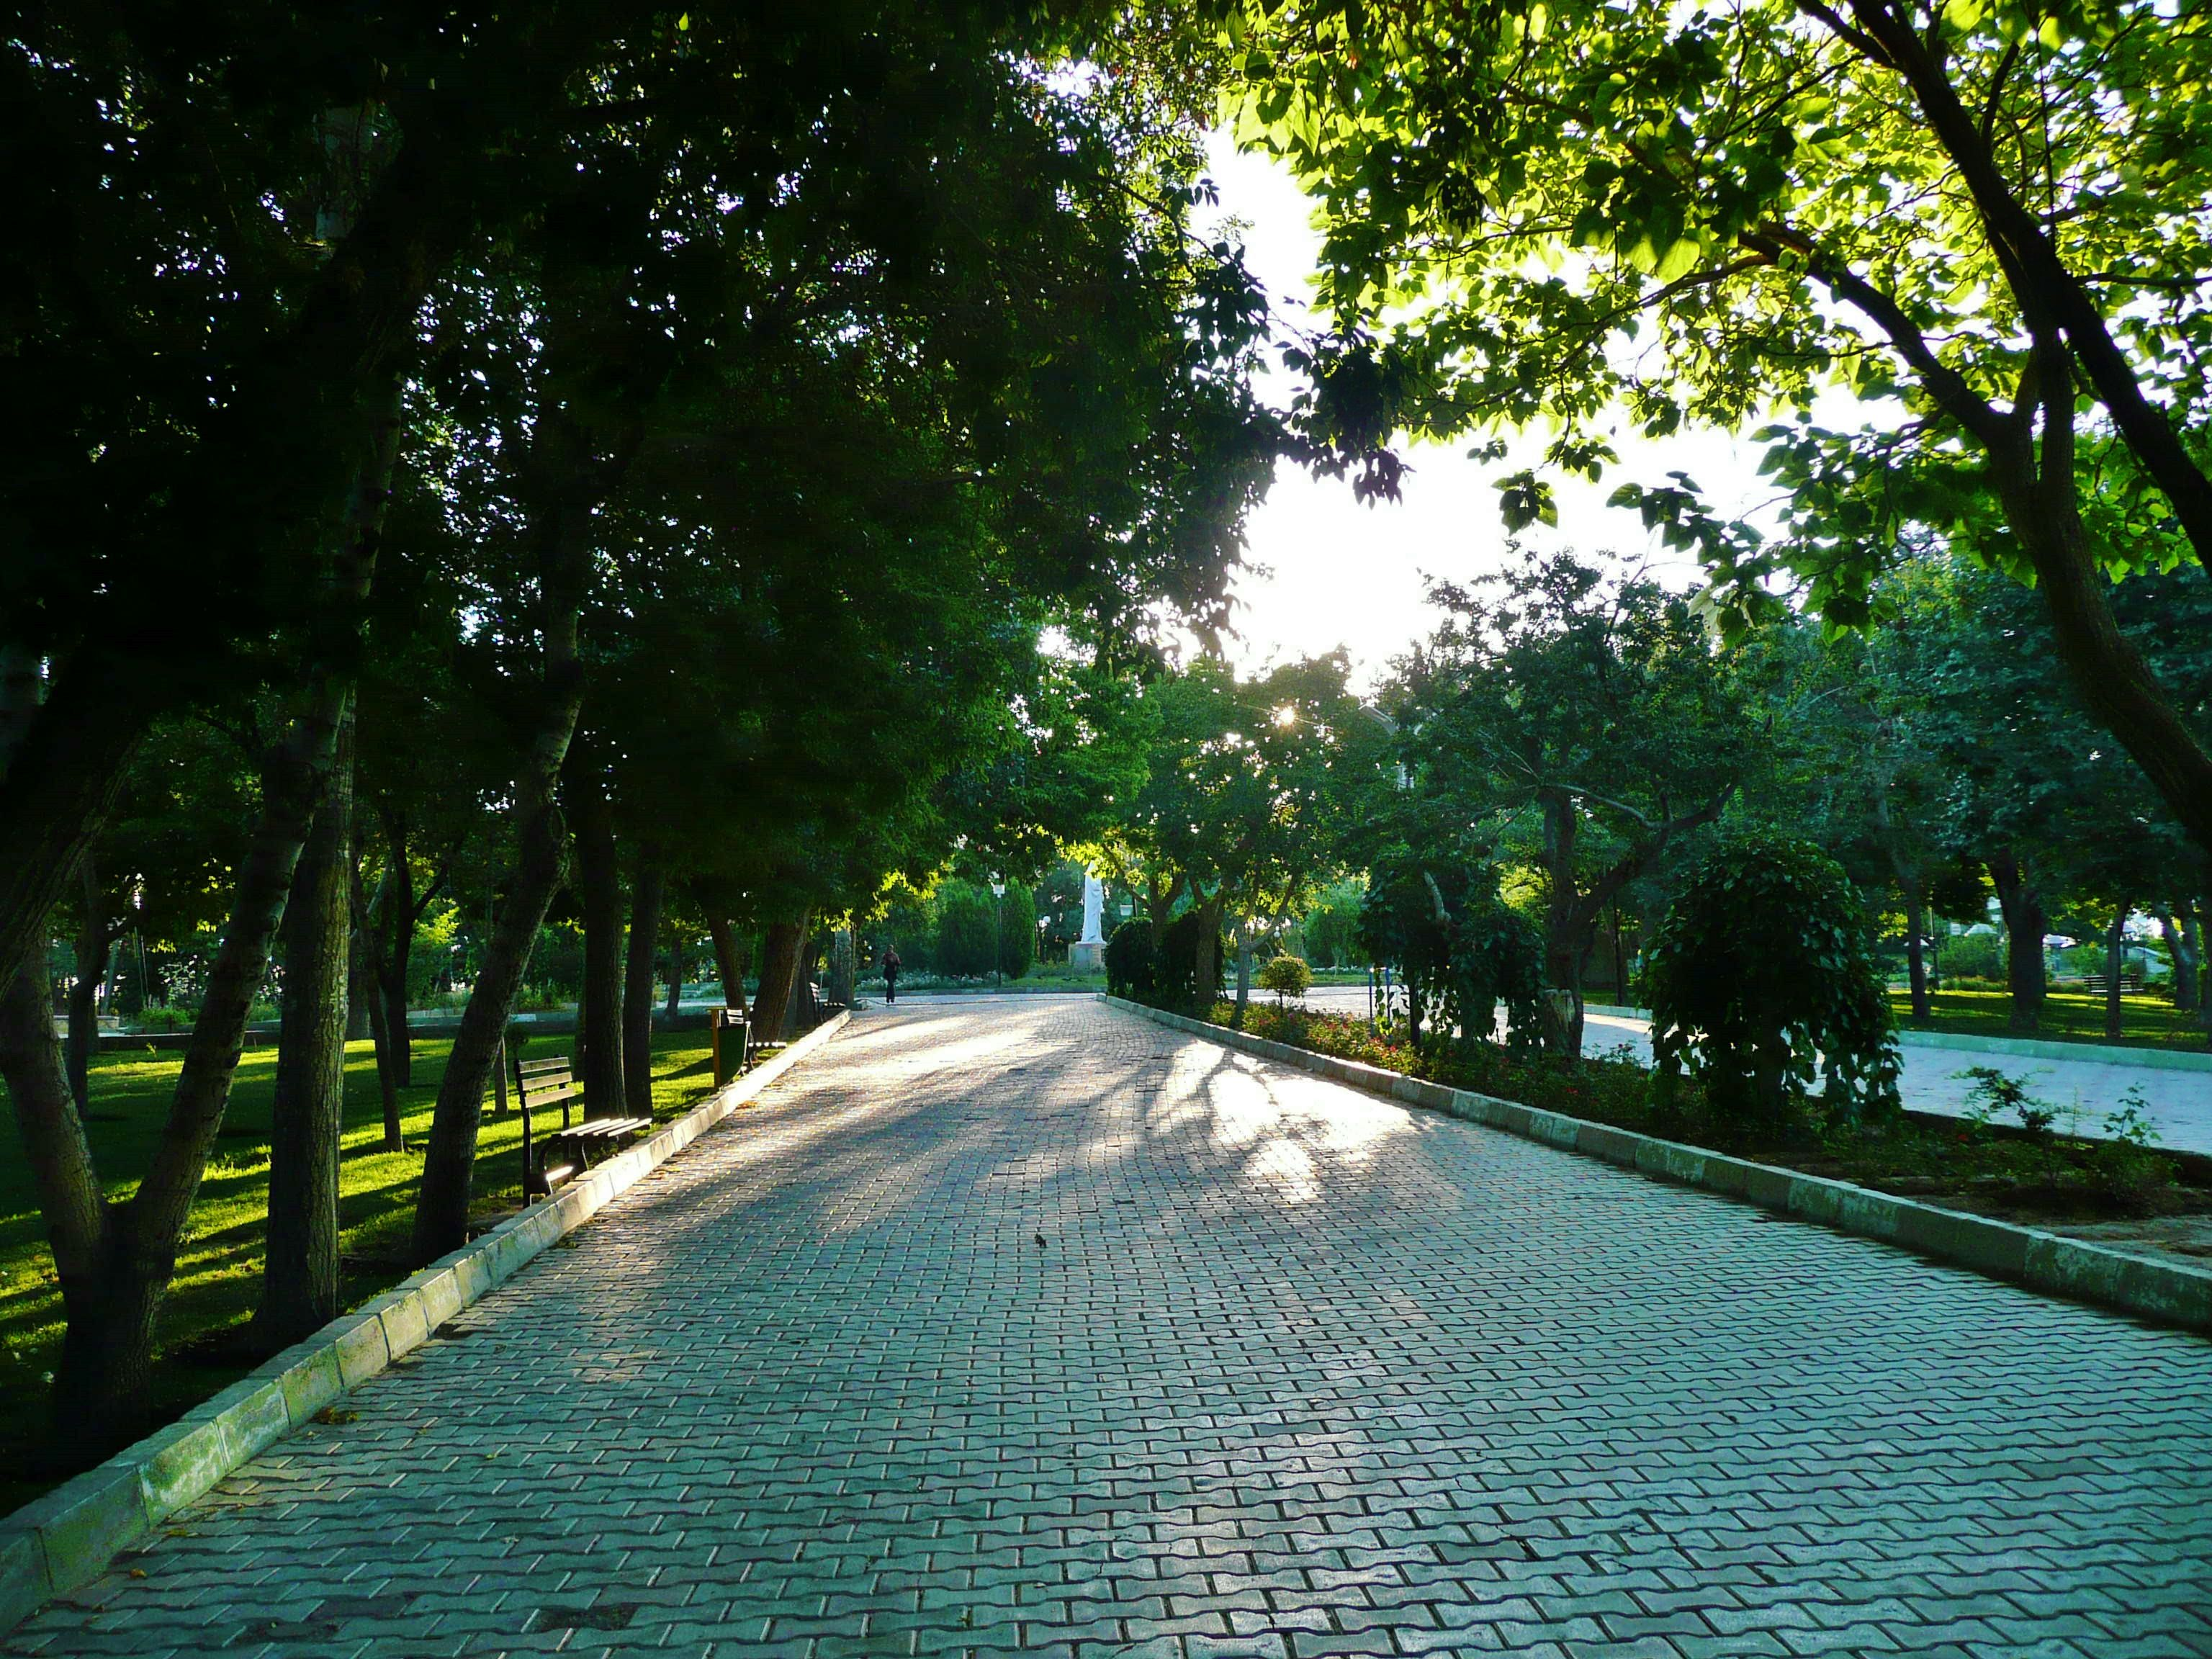 The Shah Goli grounds are very serene early in the morning and perfect for brisk runs and exercise.  Shah Goli Park - Tabriz, Iran